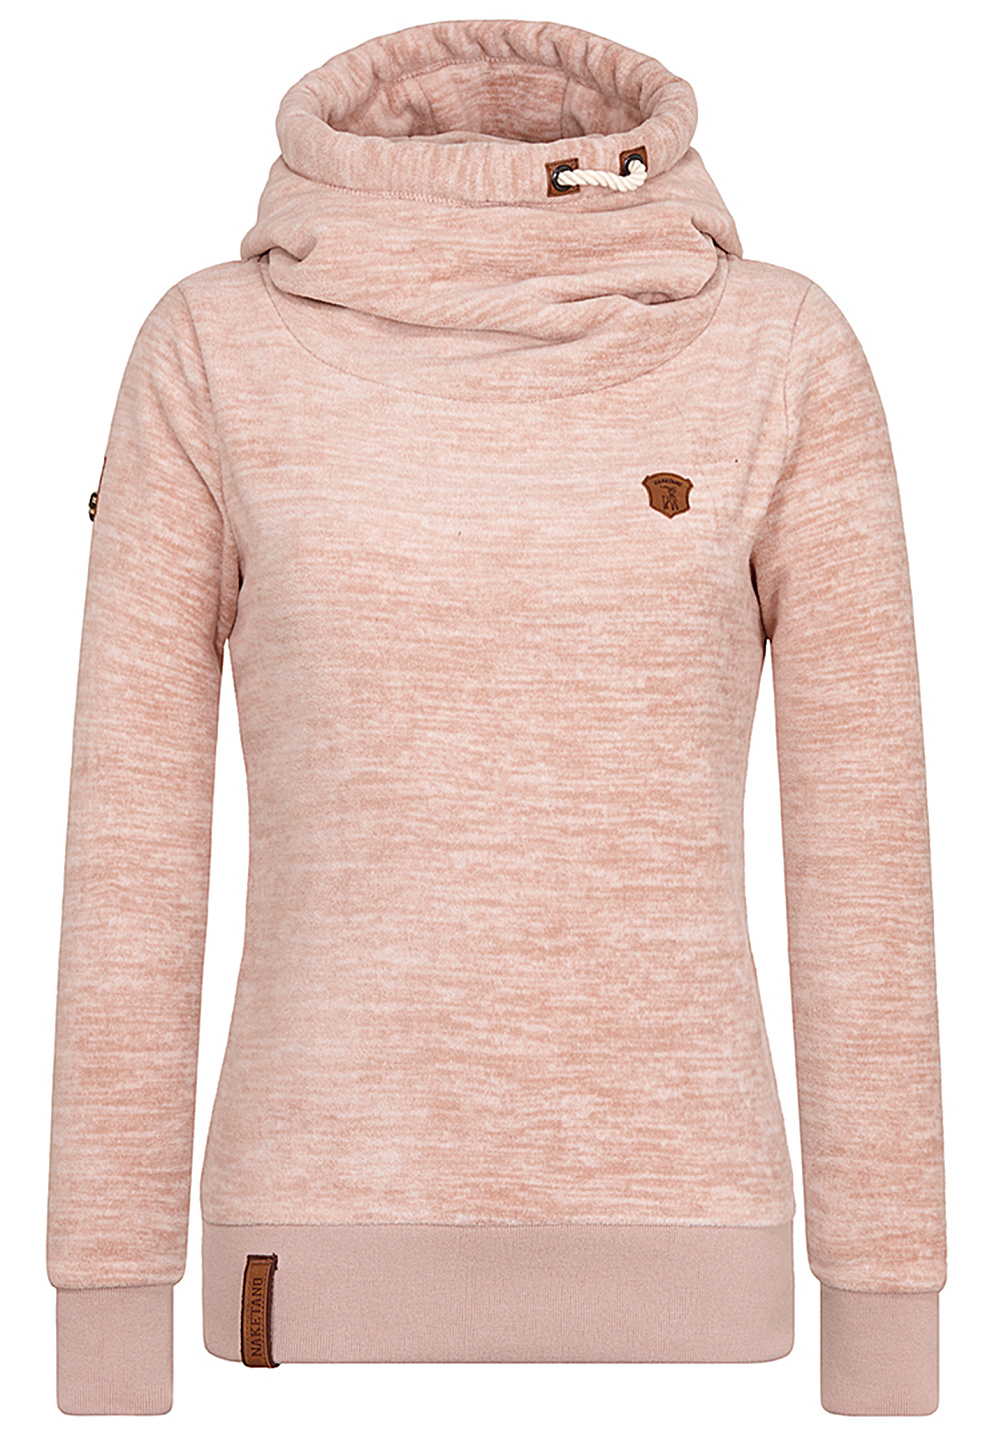 NAKETANO Pellkopp Sibi Hooded Sweatshirt for Women Pink